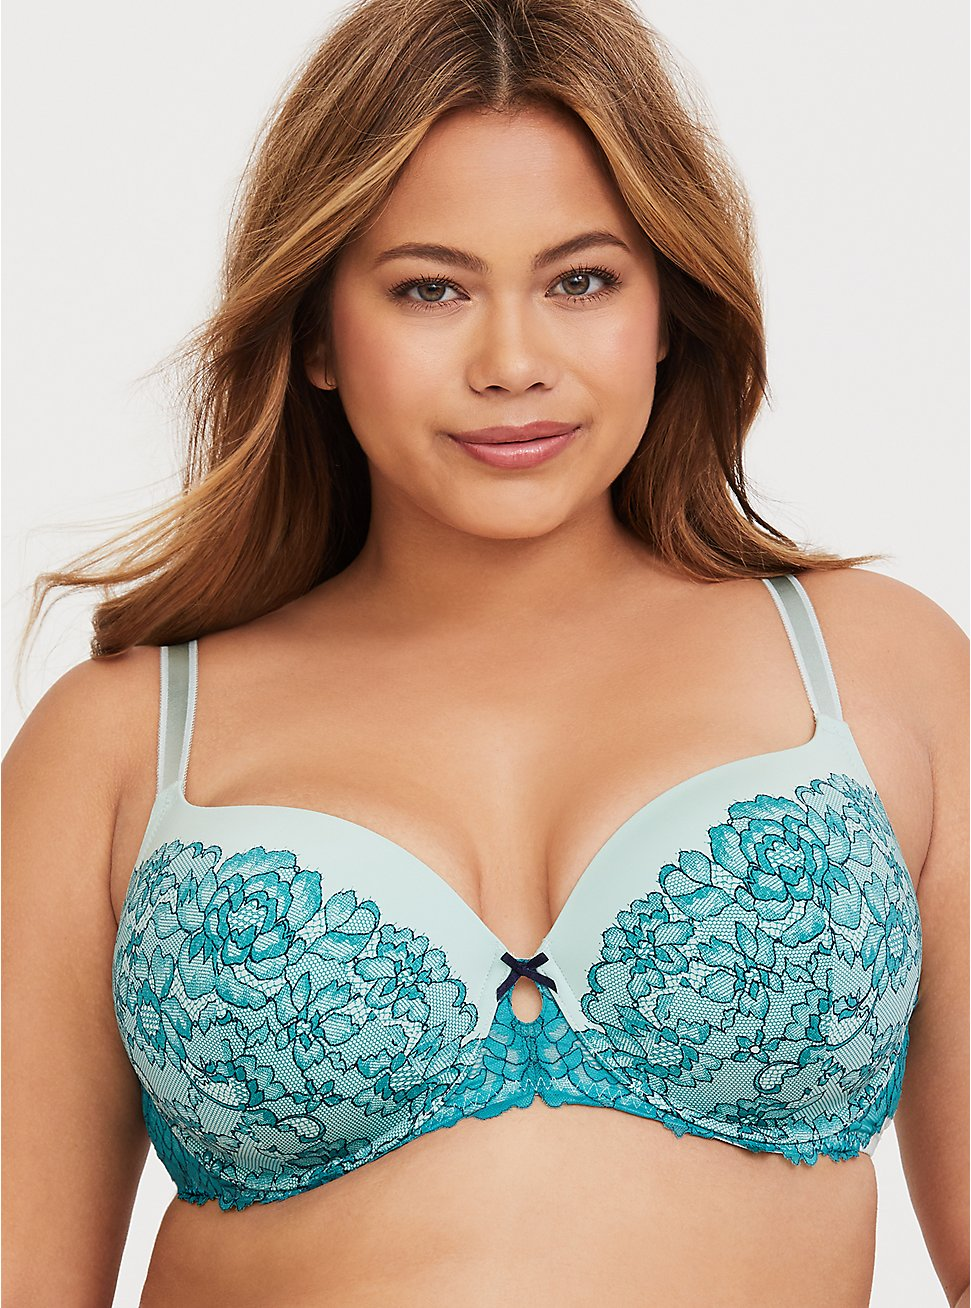 Plus Size Mint Green & Teal Lace Lightly Lined T-Shirt Bra, MULTICOLOR, hi-res